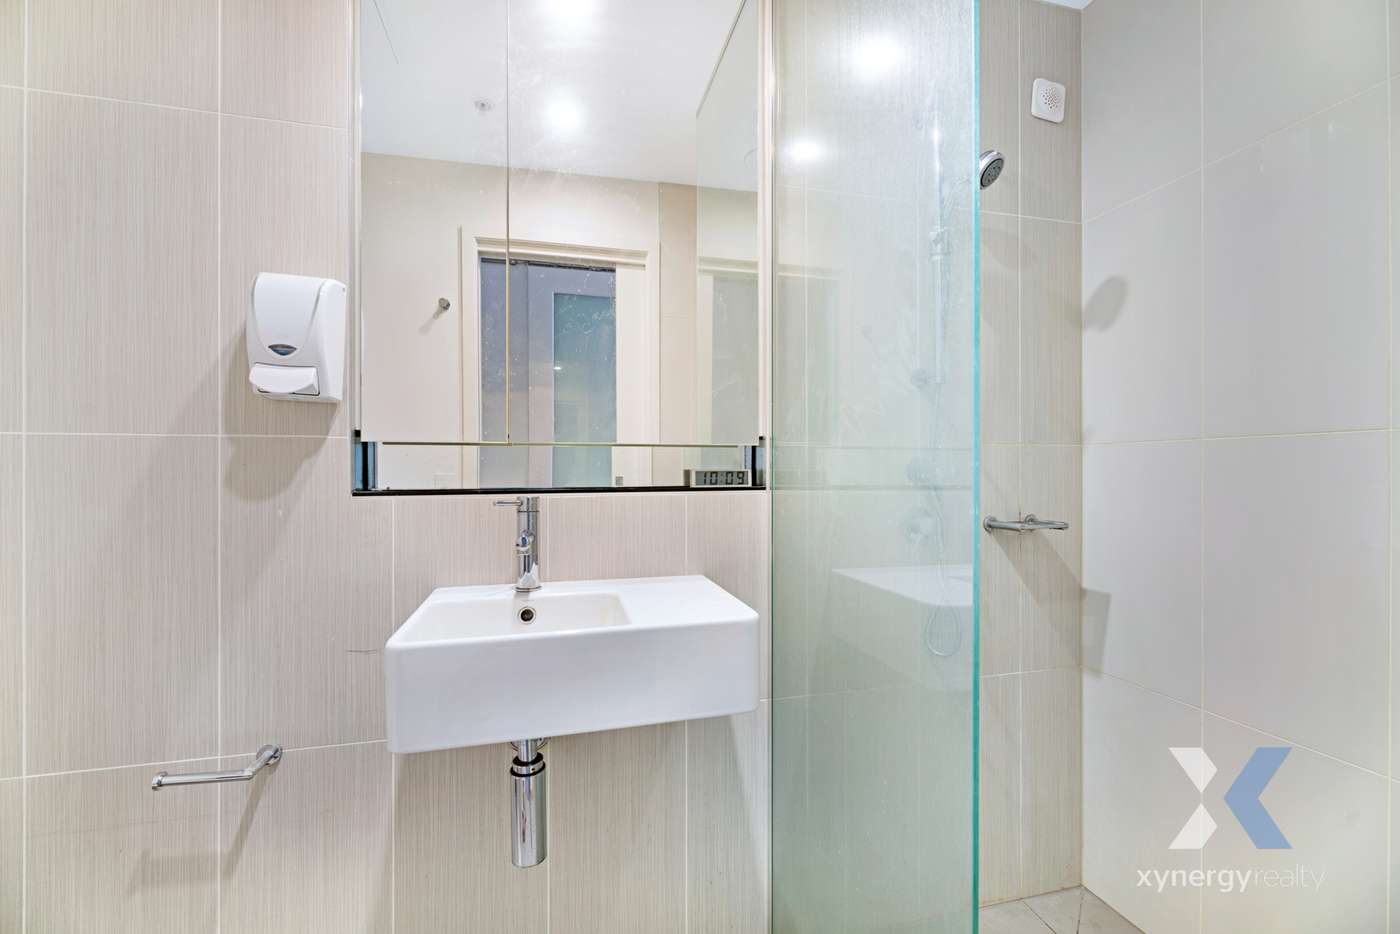 Sixth view of Homely apartment listing, 521/35 Malcolm Street, South Yarra VIC 3141